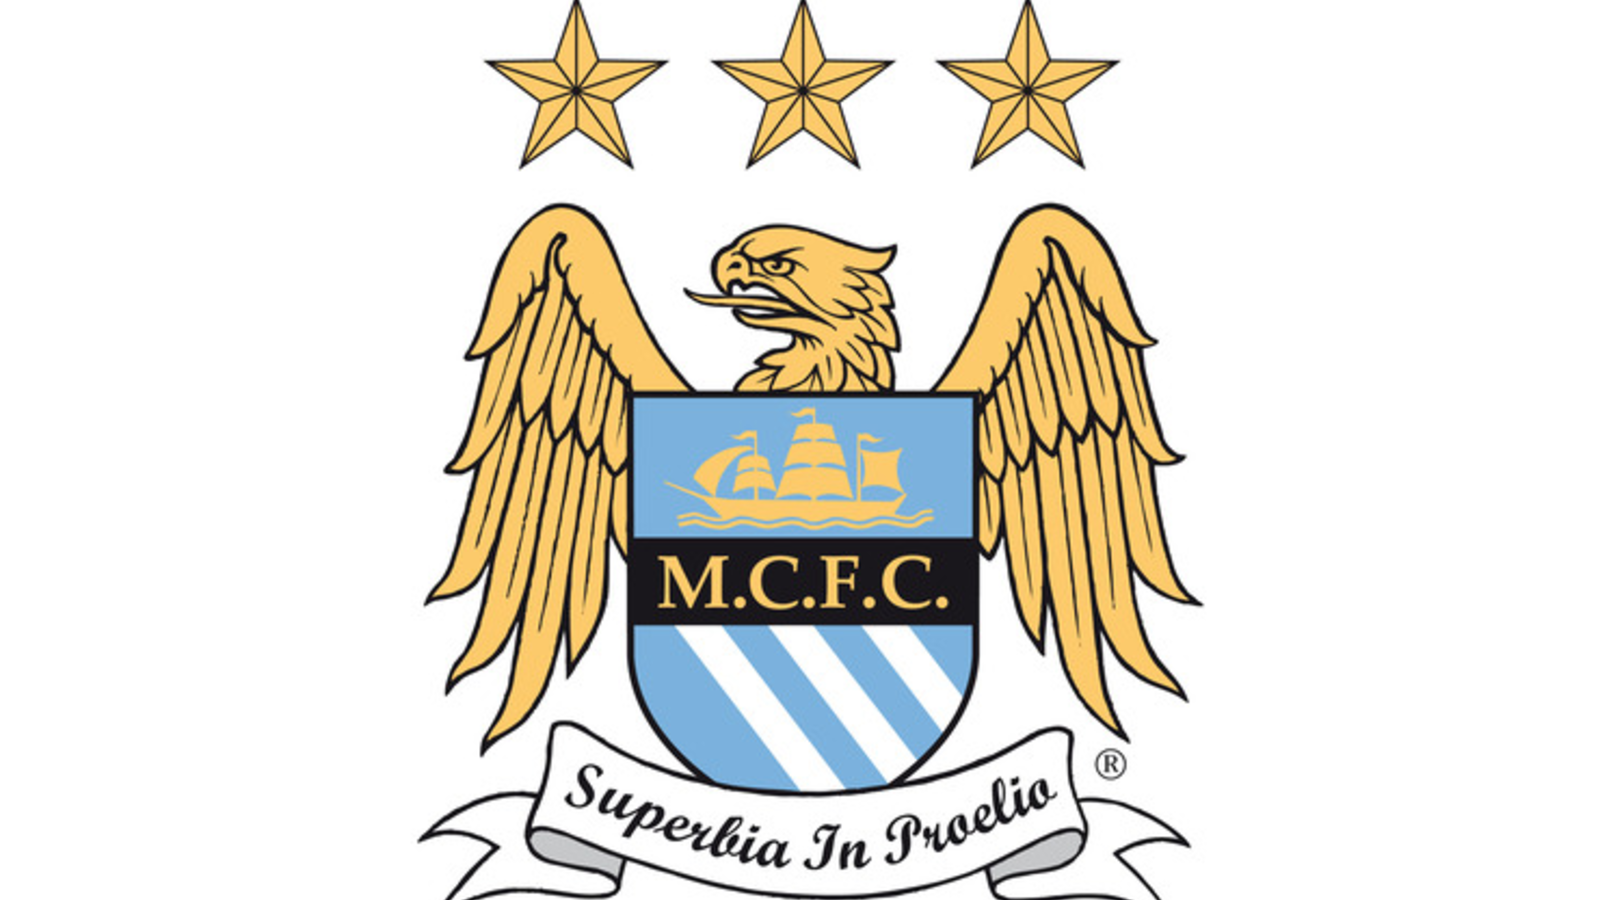 Manchester City and Nike Announce New Partnership - Nike News